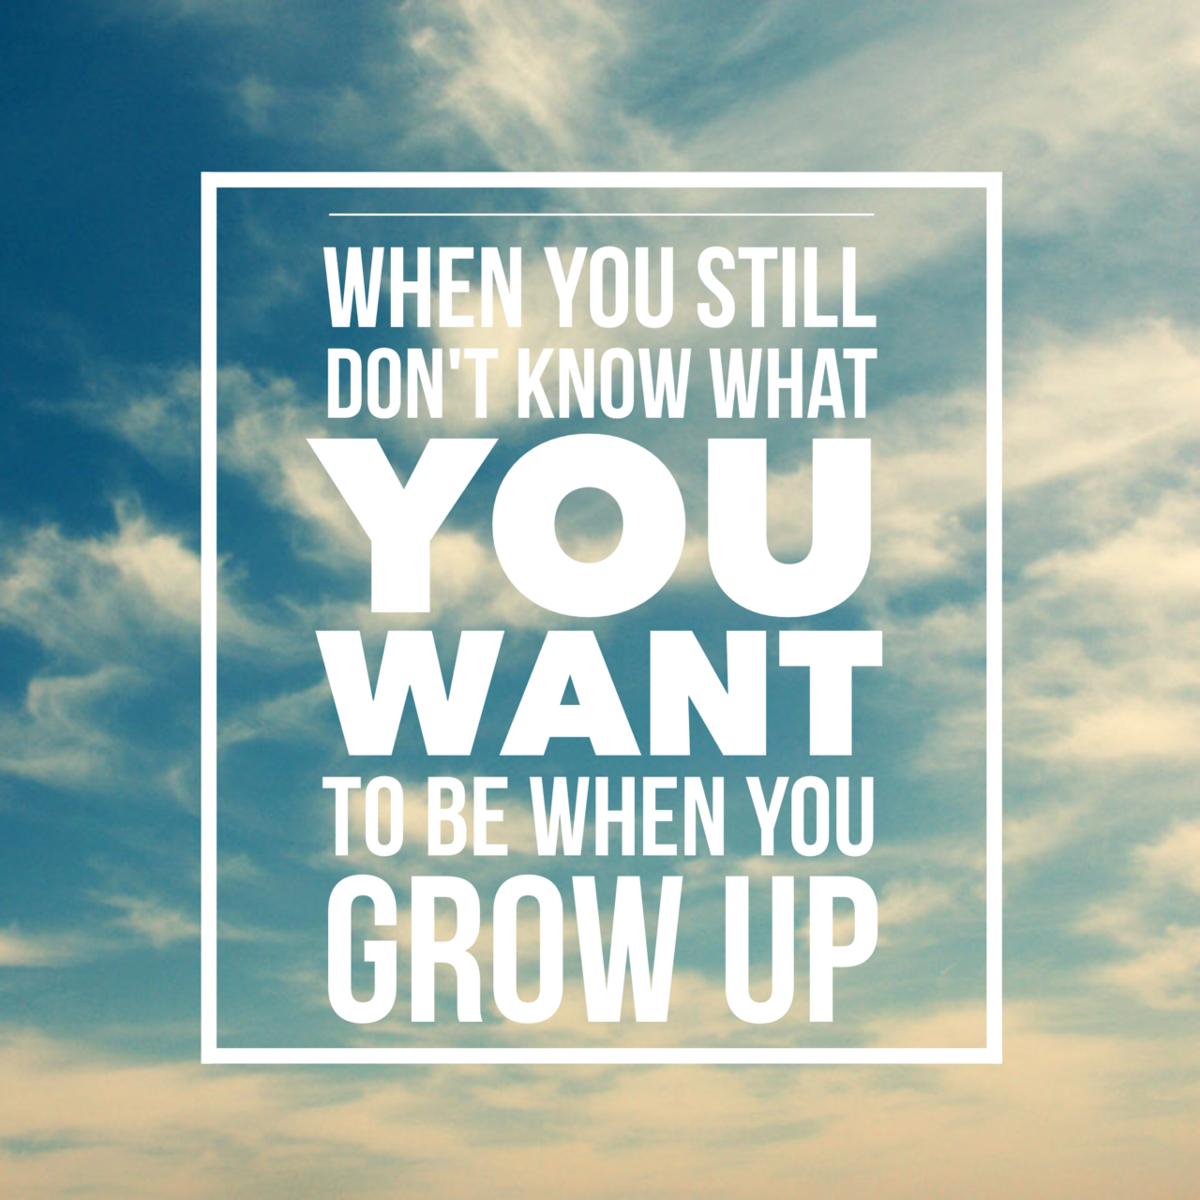 I don't know what to be when i grow up? :(?